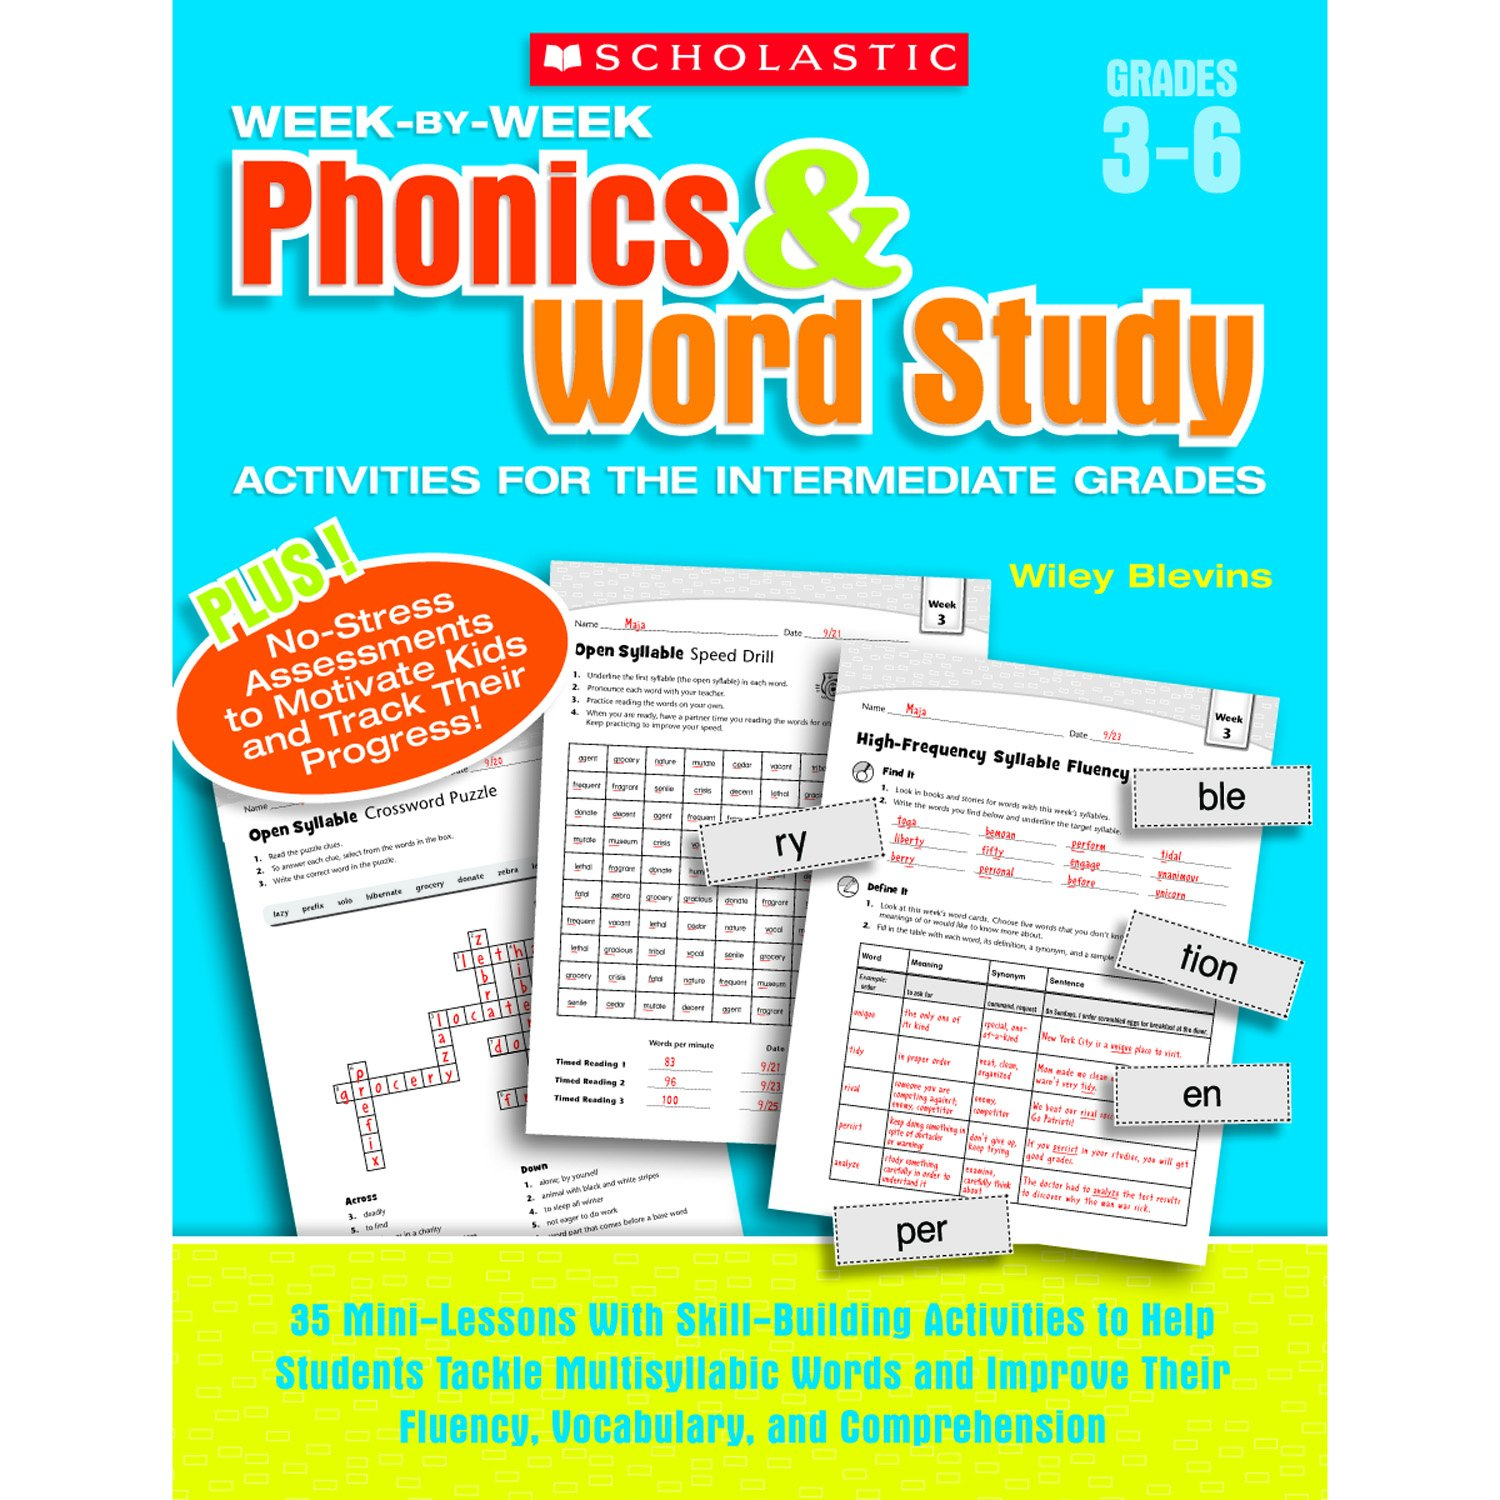 Week-by-Week Phonics & Word Study Activities for the Intermediate Grades: 35 Mini-Lessons With Skill-Building Activities to Help Students Tackle ... Their Fluency, Vocabulary, and Comprehension pdf